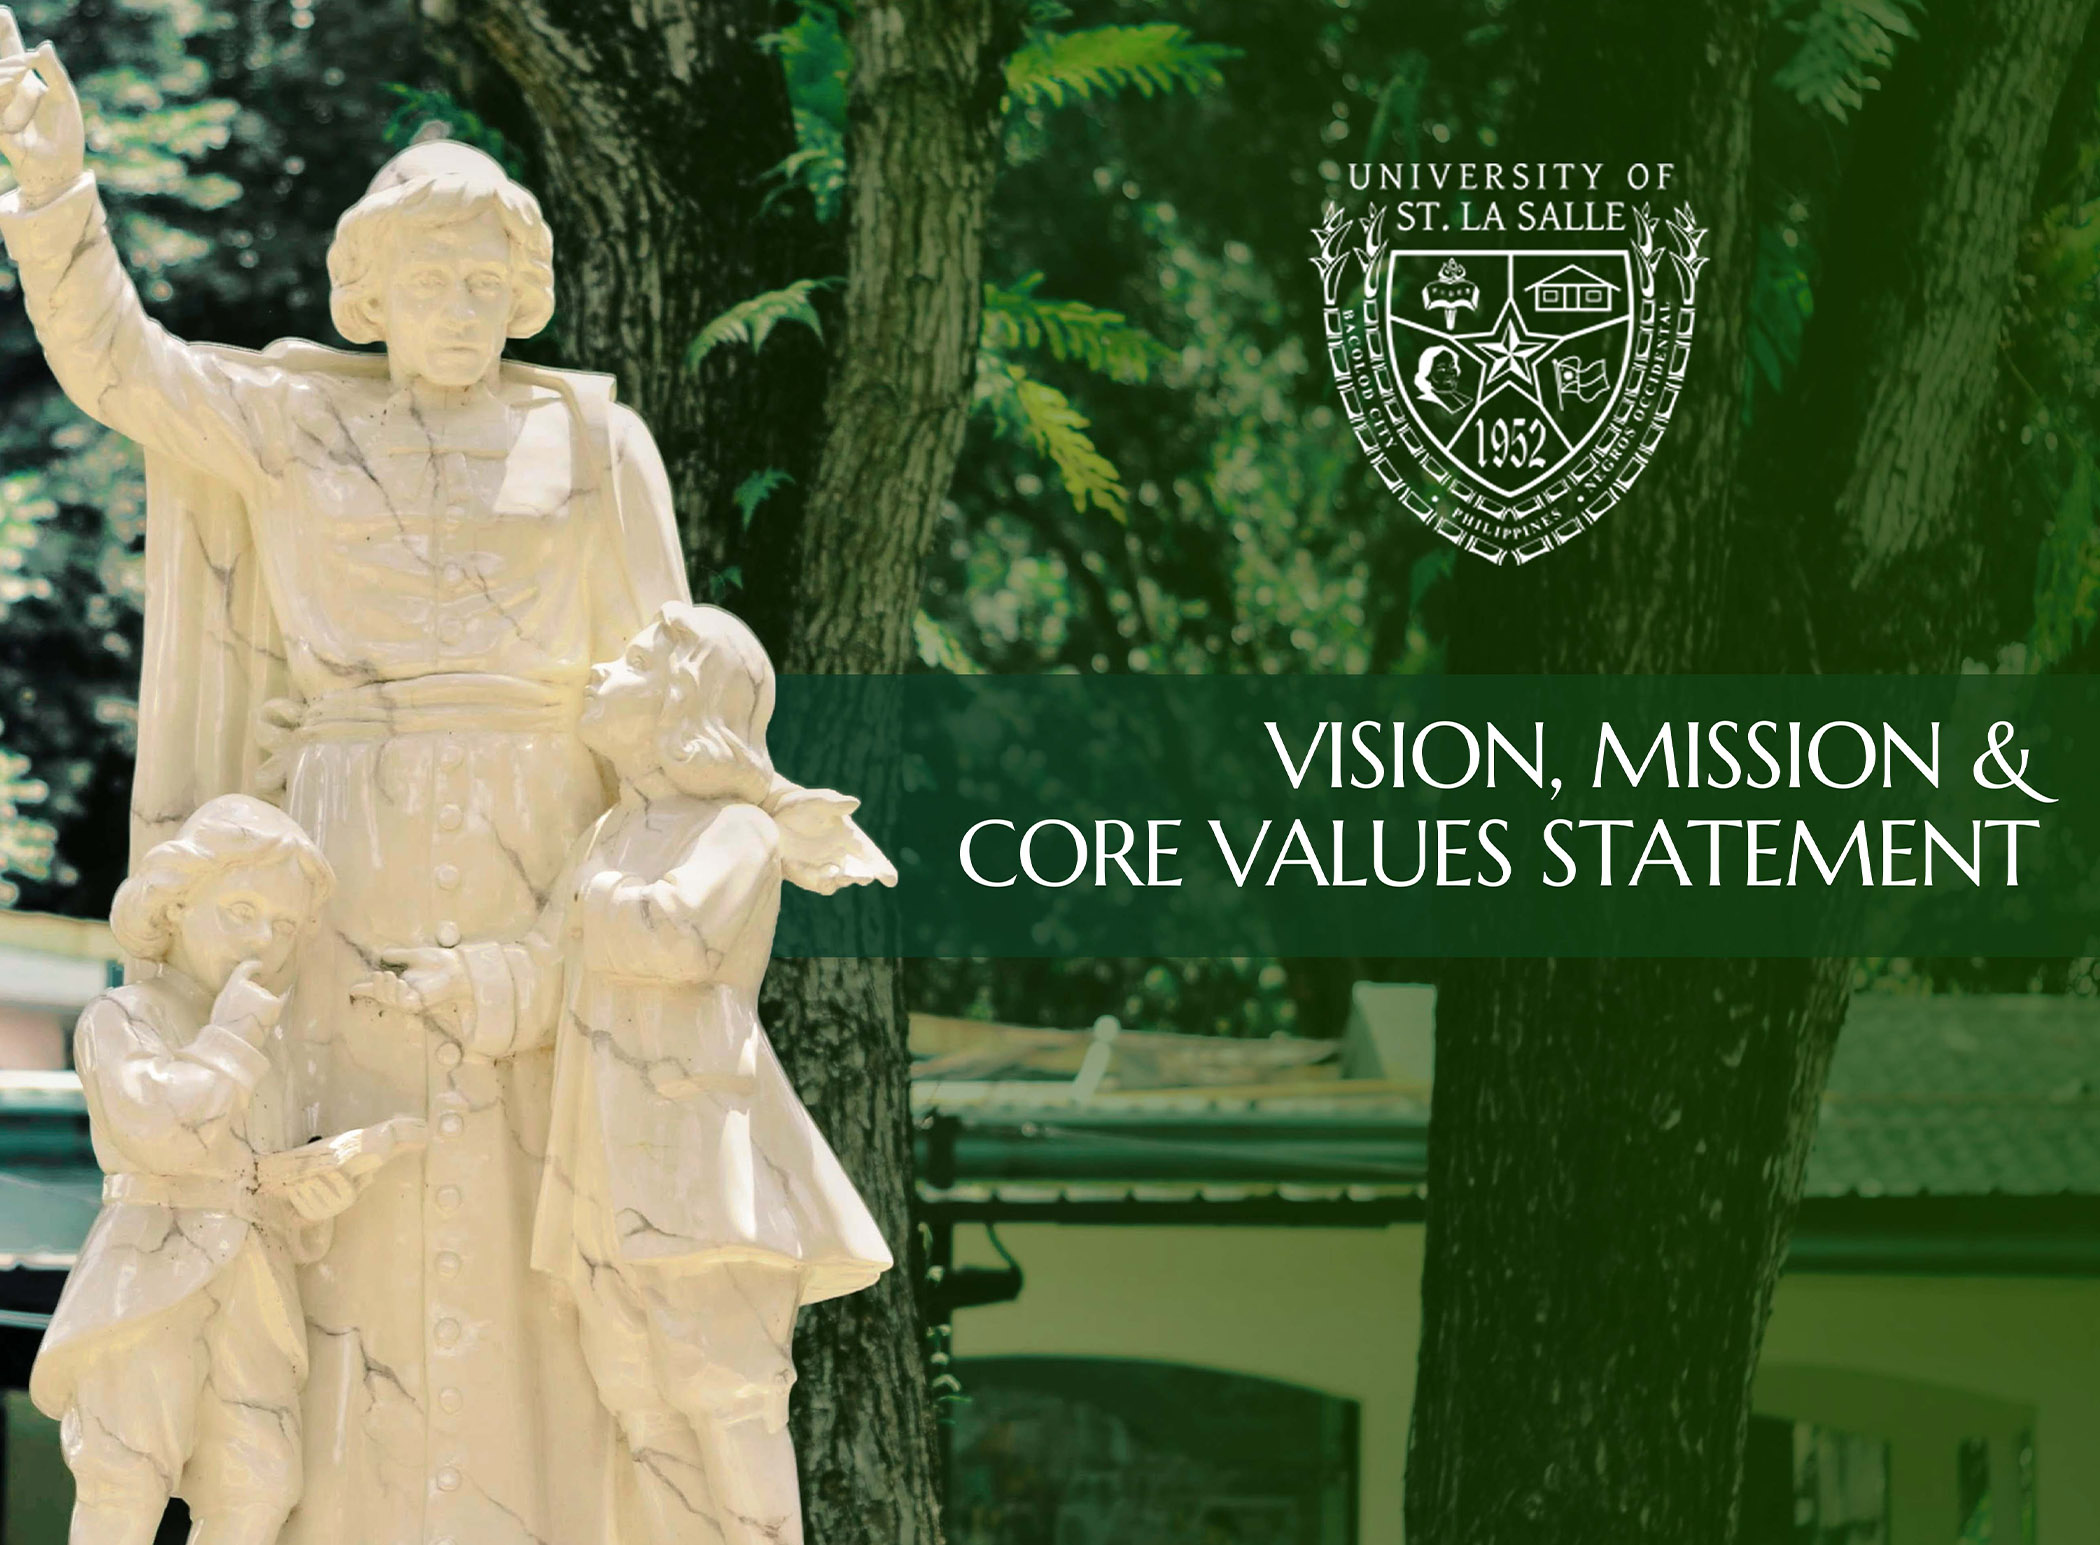 USLS-launches-new-Vision-Mission-and-Core-Values-Statement.jpg